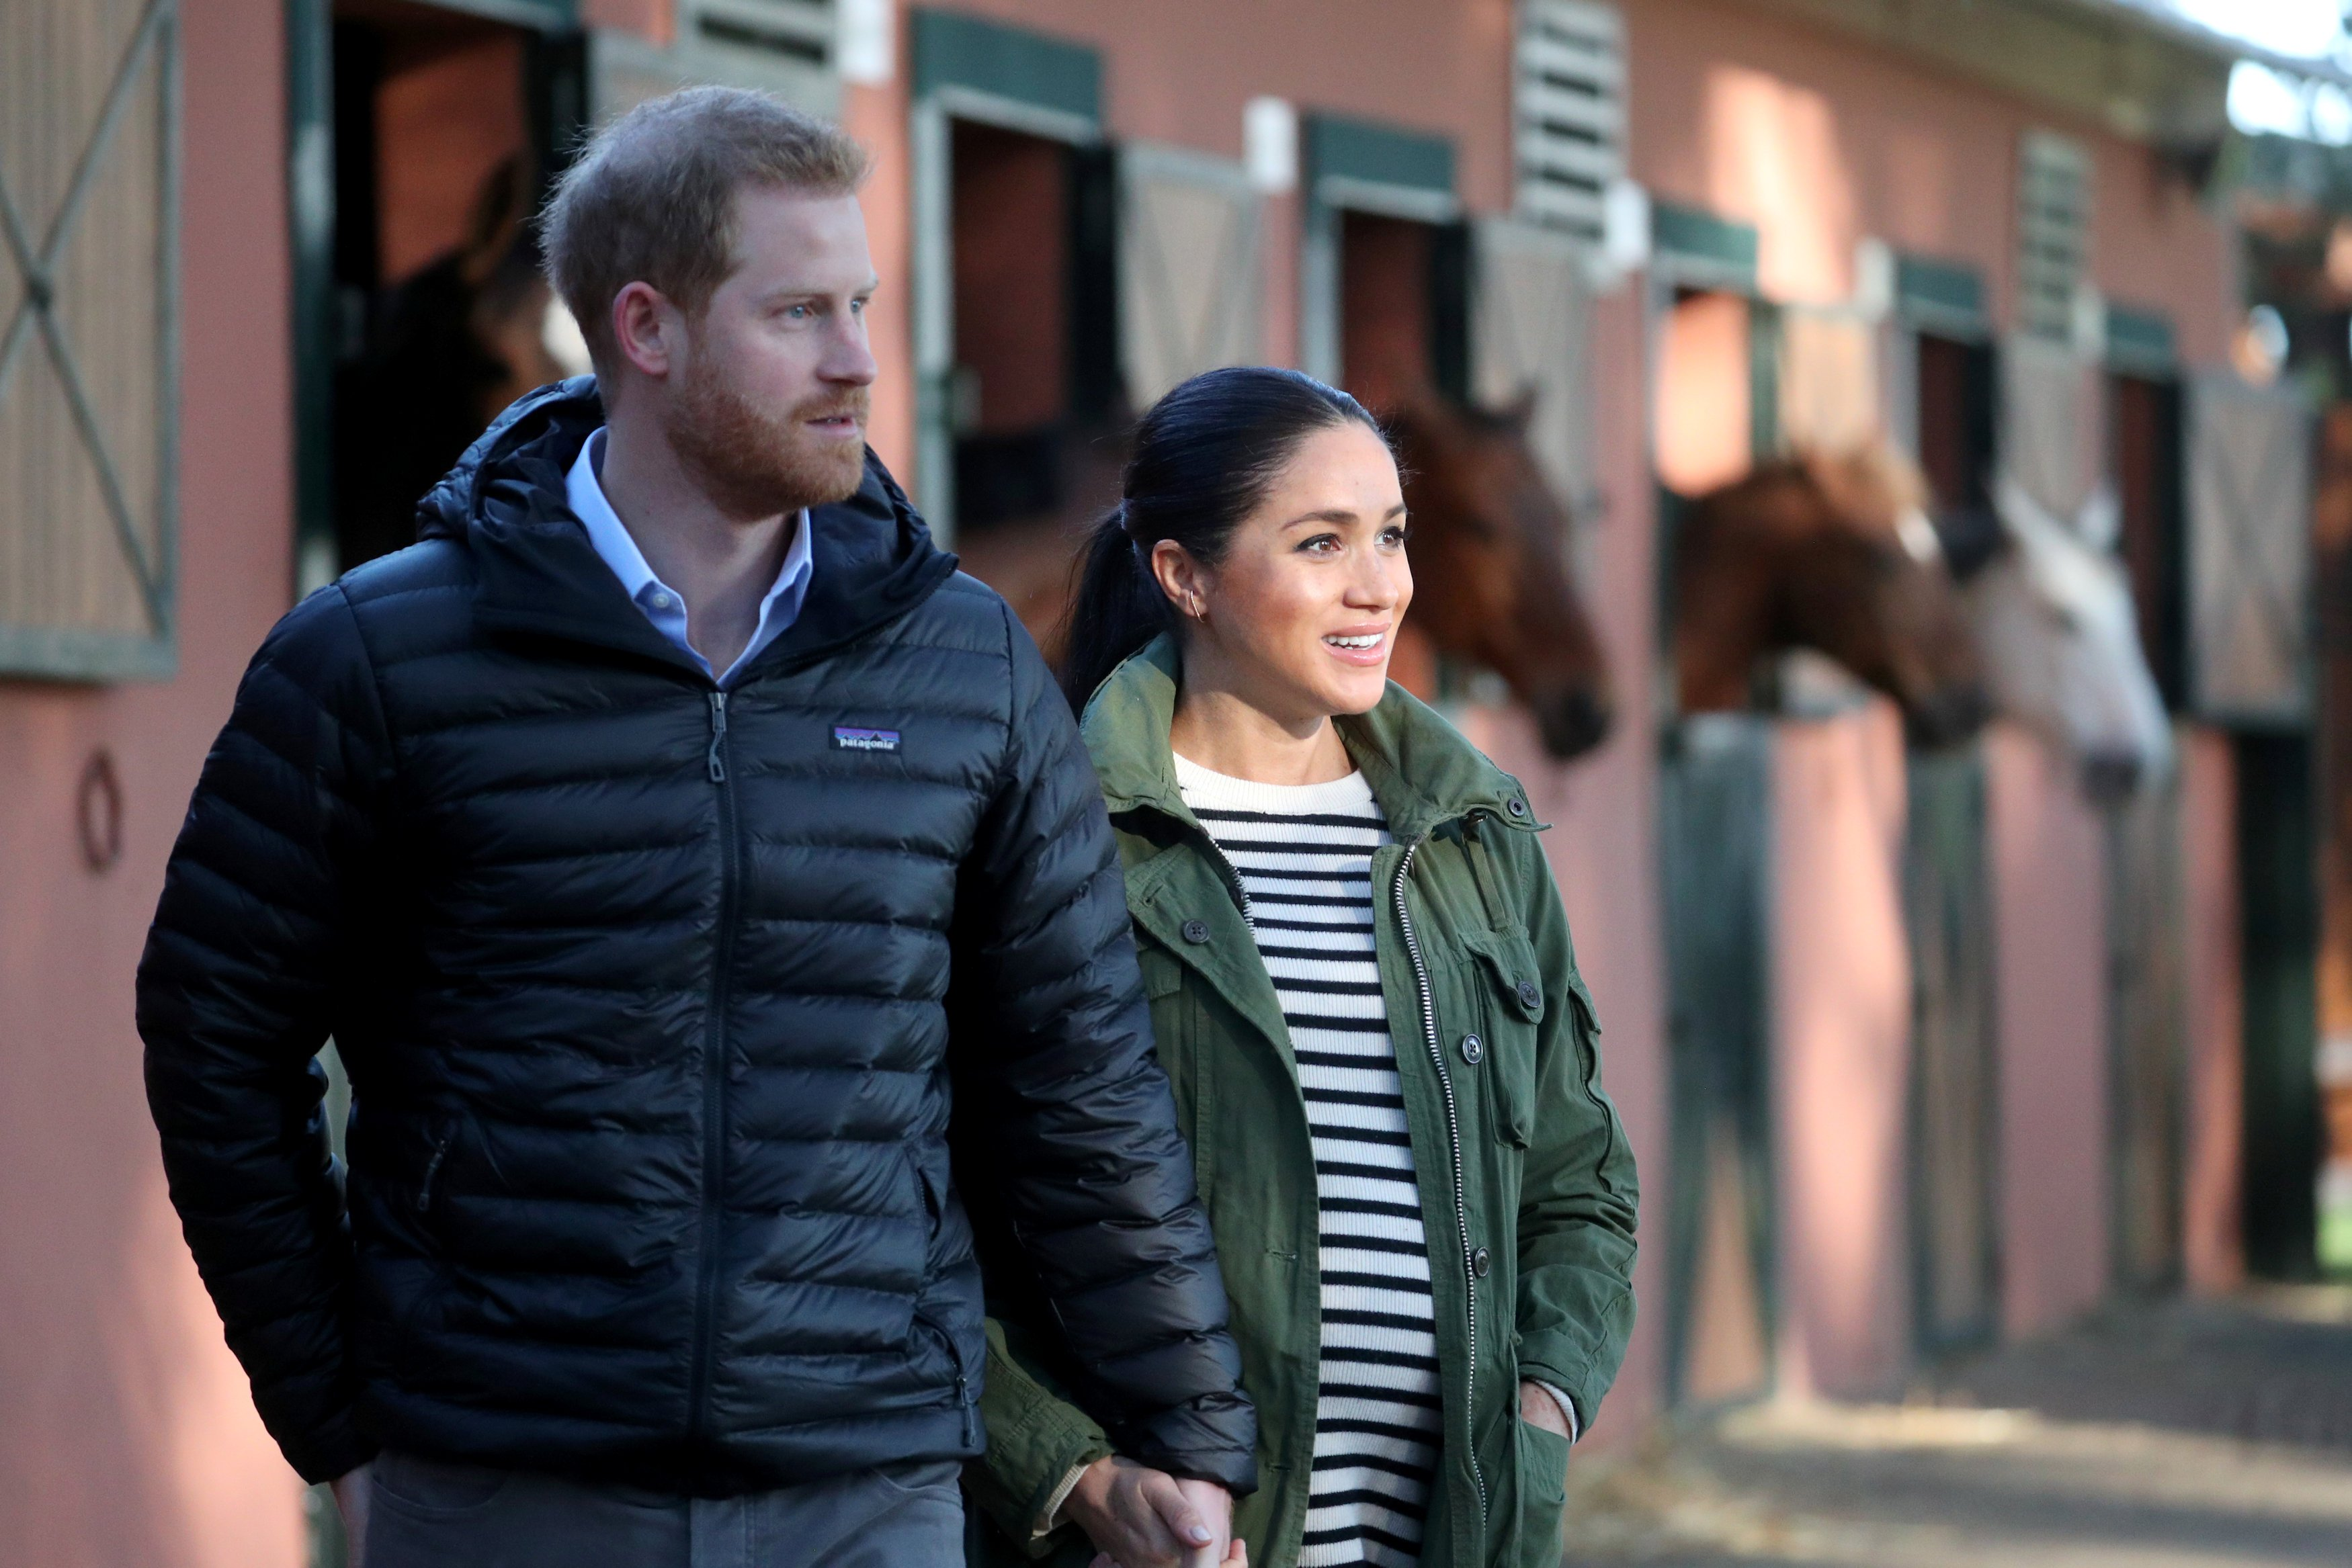 Image Credits: Getty Images / Hannah Mckay - Pool | Prince Harry, Duke of Sussex and Meghan, Duchess of Sussex visit the Moroccan Royal Federation of Equitation Sports on February 25, 2019 in Rabat, Morocco.